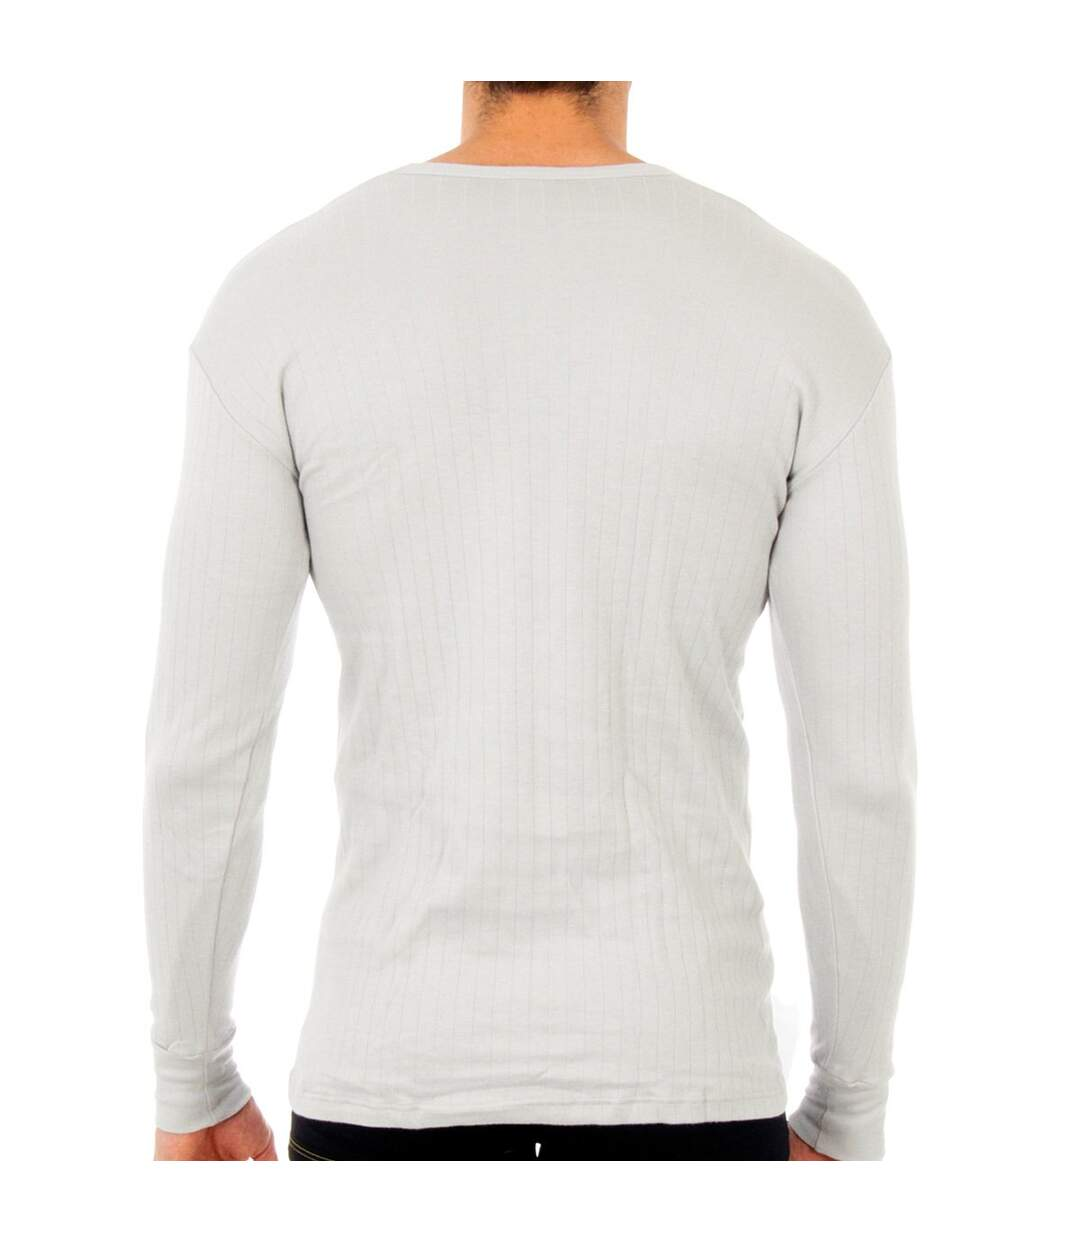 Pack-3 tee shirt thermiques manches longong